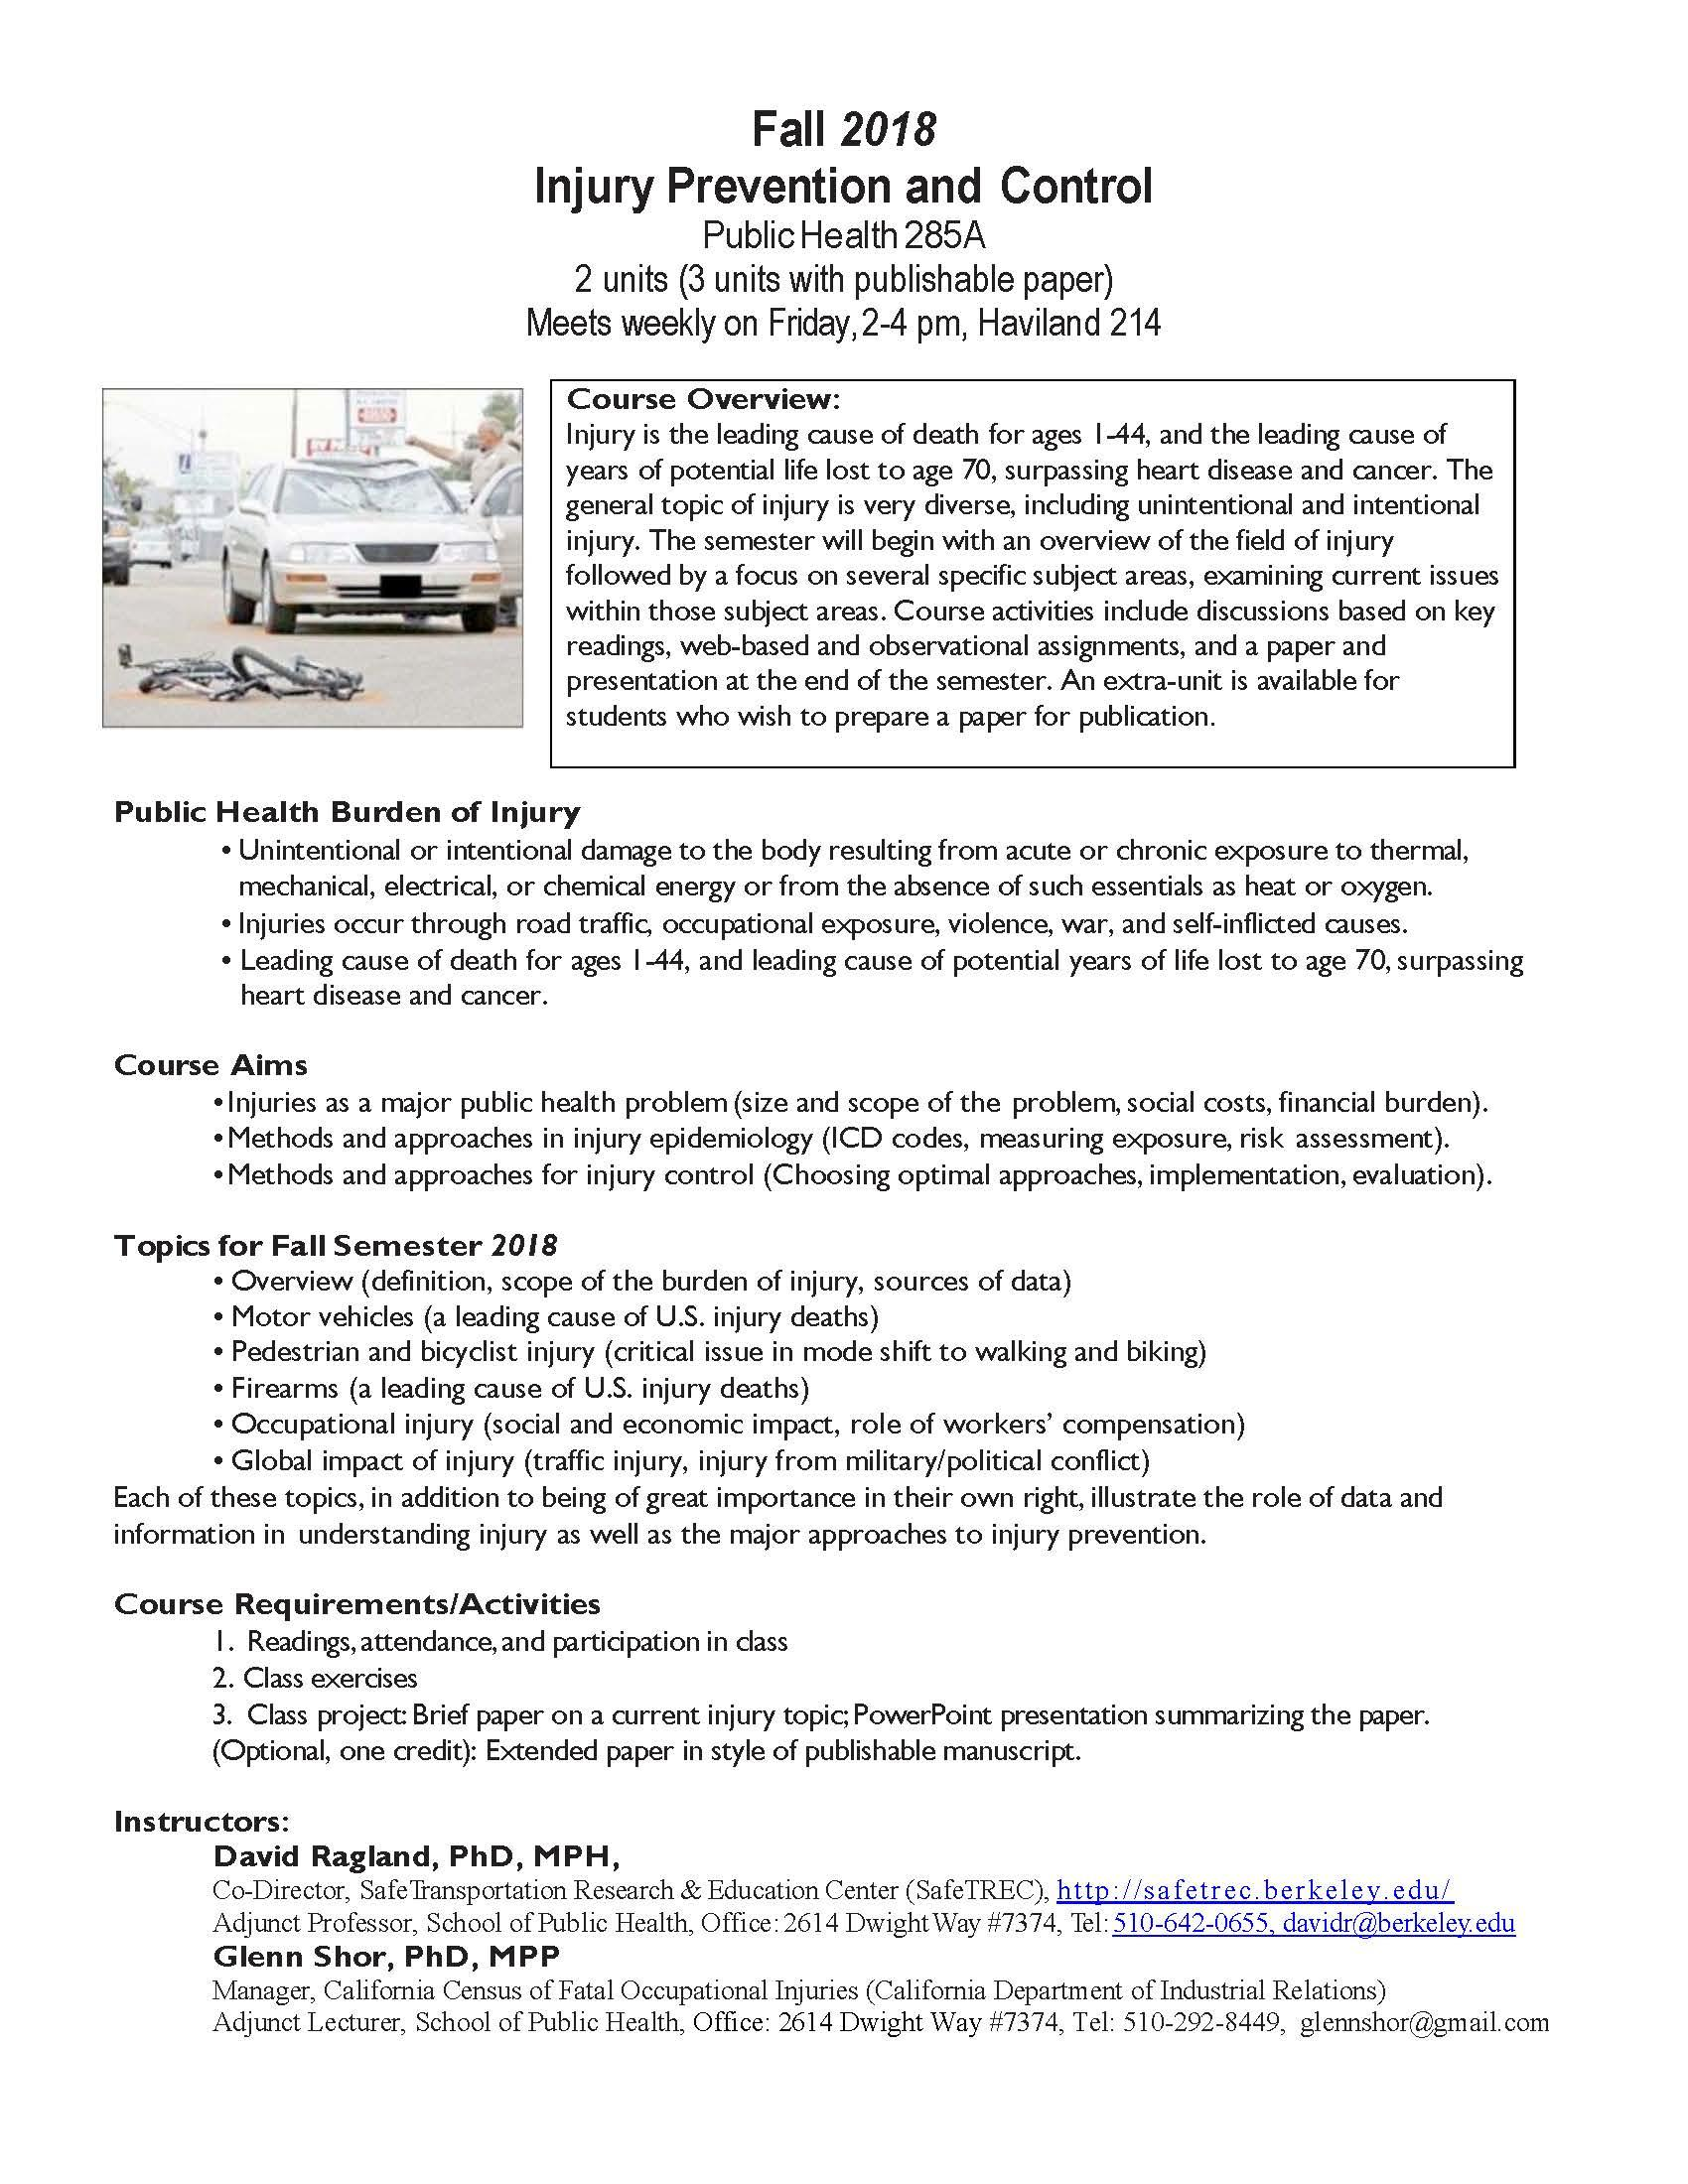 Fall 2018 Injury Prevention and Control Flyer